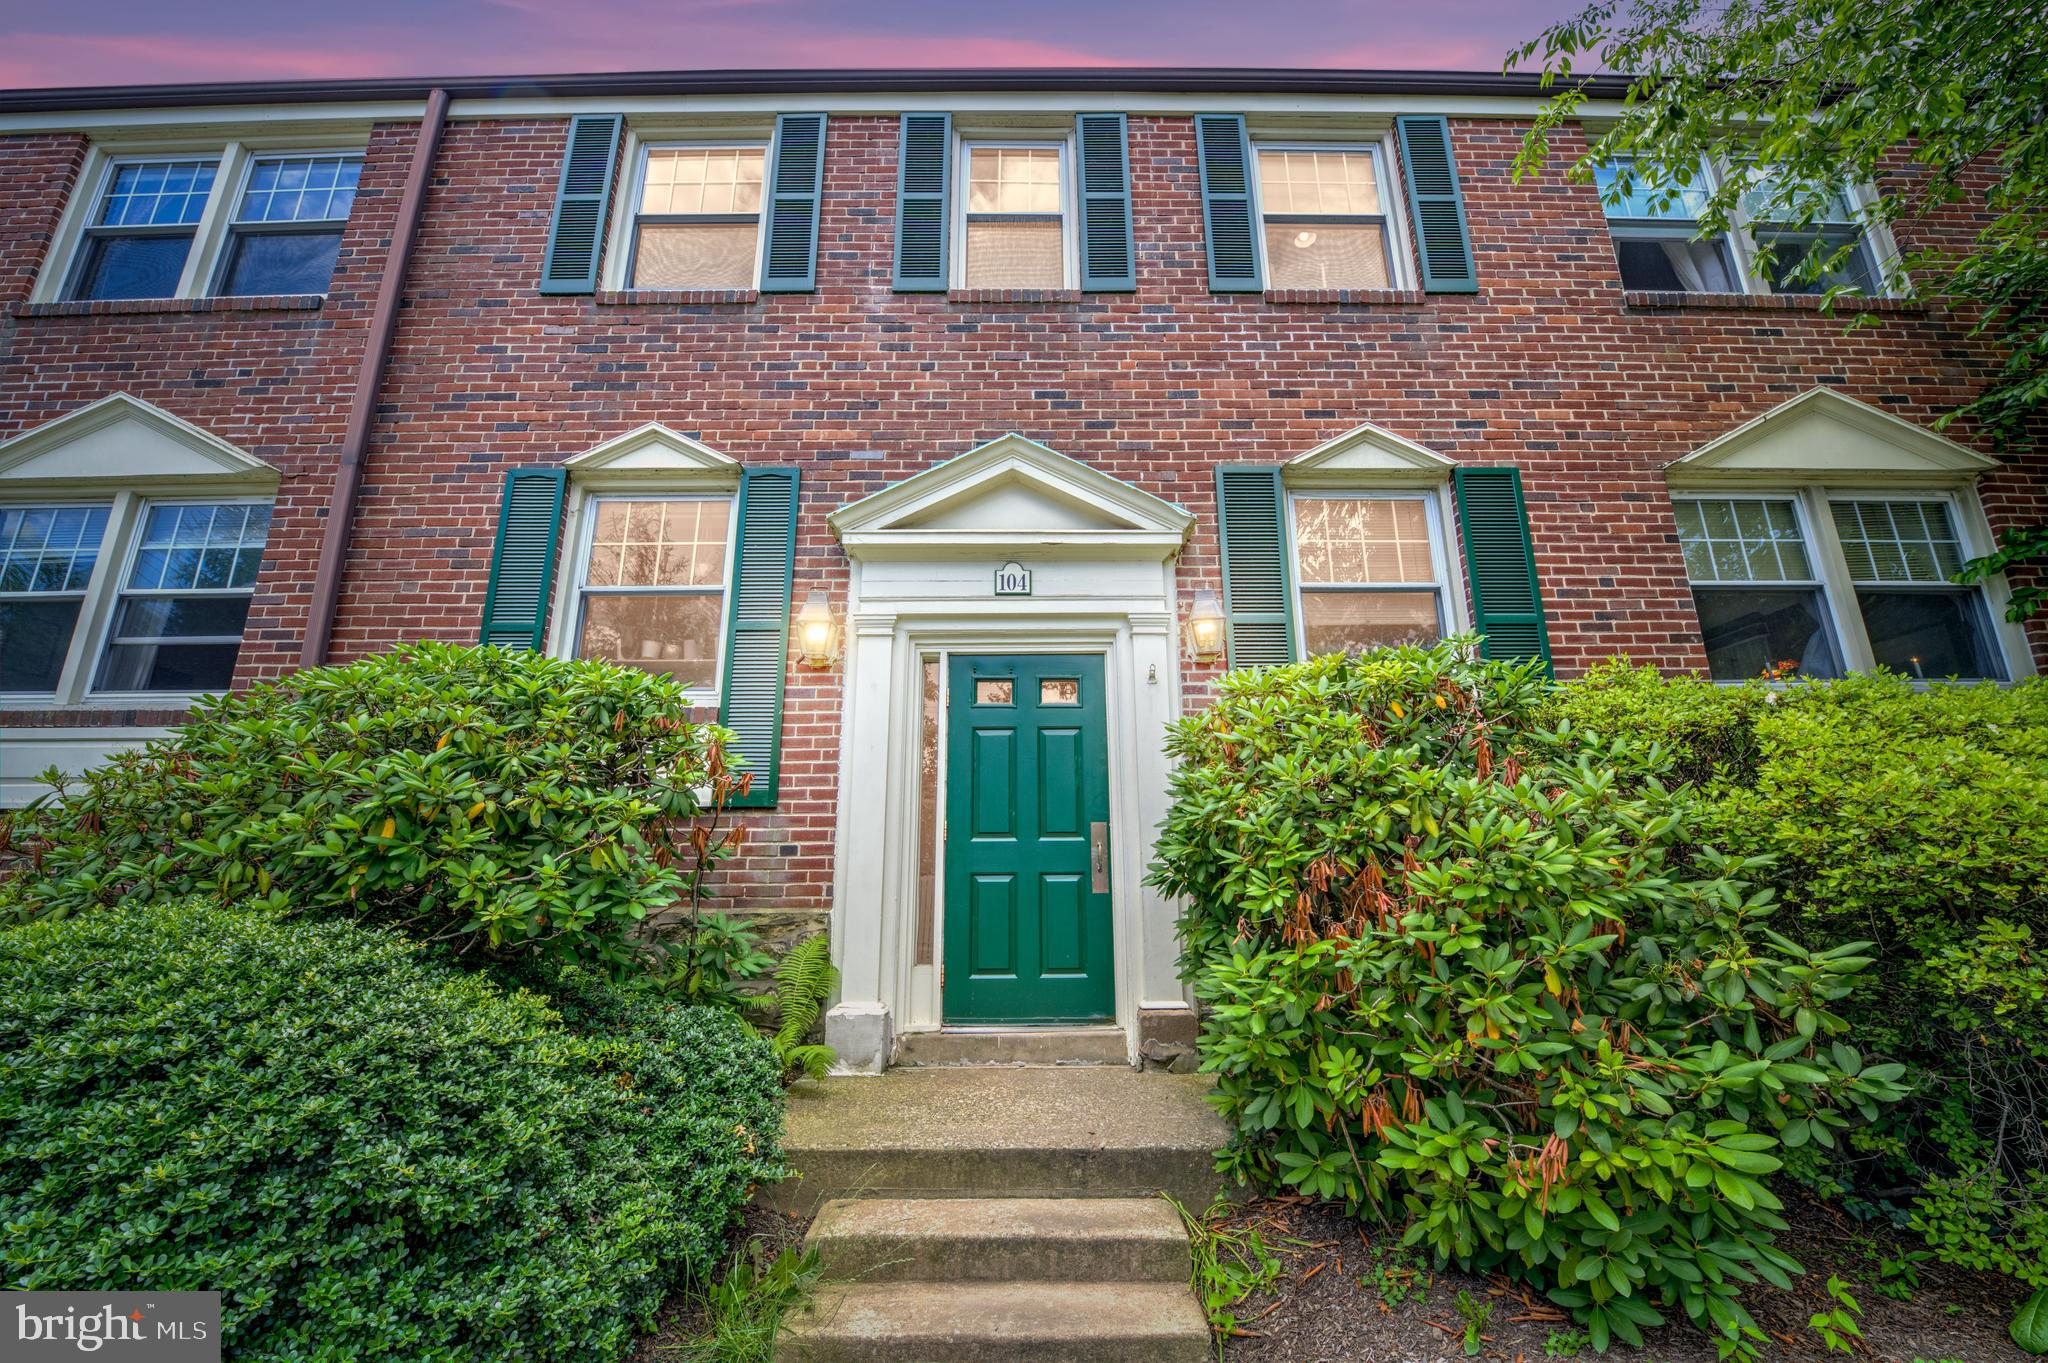 Welcome to Unit 104C in Saint Davids Park! Move right into this 2 bedroom, 1 bath condo which includes a separately deeded parking spot #8 (Tax ID 36-03-01702-17) in the underground garage with remote entry. As you enter the front door, a convenient hall closet greets you with hardwood floors that carry throughout the entire unit reflecting an abundance of natural light. The open kitchen with newer oven and granite countertops affords a pass through into the large living room with crown molding. The designated dining area is currently set up as a work from home office perfect for attending those mandatory zoom meetings. Both bedrooms offer plenty of closet space. A shared hall bathroom completes the floorplan. The bonus basement offers a personal washer and dryer (both new in 2017), wash basin, plus plenty of storage space. *** Please call us for the personalized website that we created especially for this home featuring a three-dimensional Matterport tour, Virtual Reality Walkthrough, detailed Floor Plan, professional photography, aerial drone footage, and community video. Disclaimer: Some photos have been digitally enhanced. *** Move right into this popular community situated close to everything on the Main Line. Or purchase it as a great investment to add to your portfolio. Award-winning Radnor School District! Don't miss an opportunity to live in one of the Main Line's most sought-after towns! Easy access to Center City, 76, PA Turnpike, Routes 30 & 476, and commuter rails. Walk to the St. Davids Train station, downtown Wayne, the Library, Radnor trail, public parks, grocery store, shopping centers, restaurants, movie theater, and more! Monthly fees include snow and trash removal, landscaping, all exterior maintenance, etc.